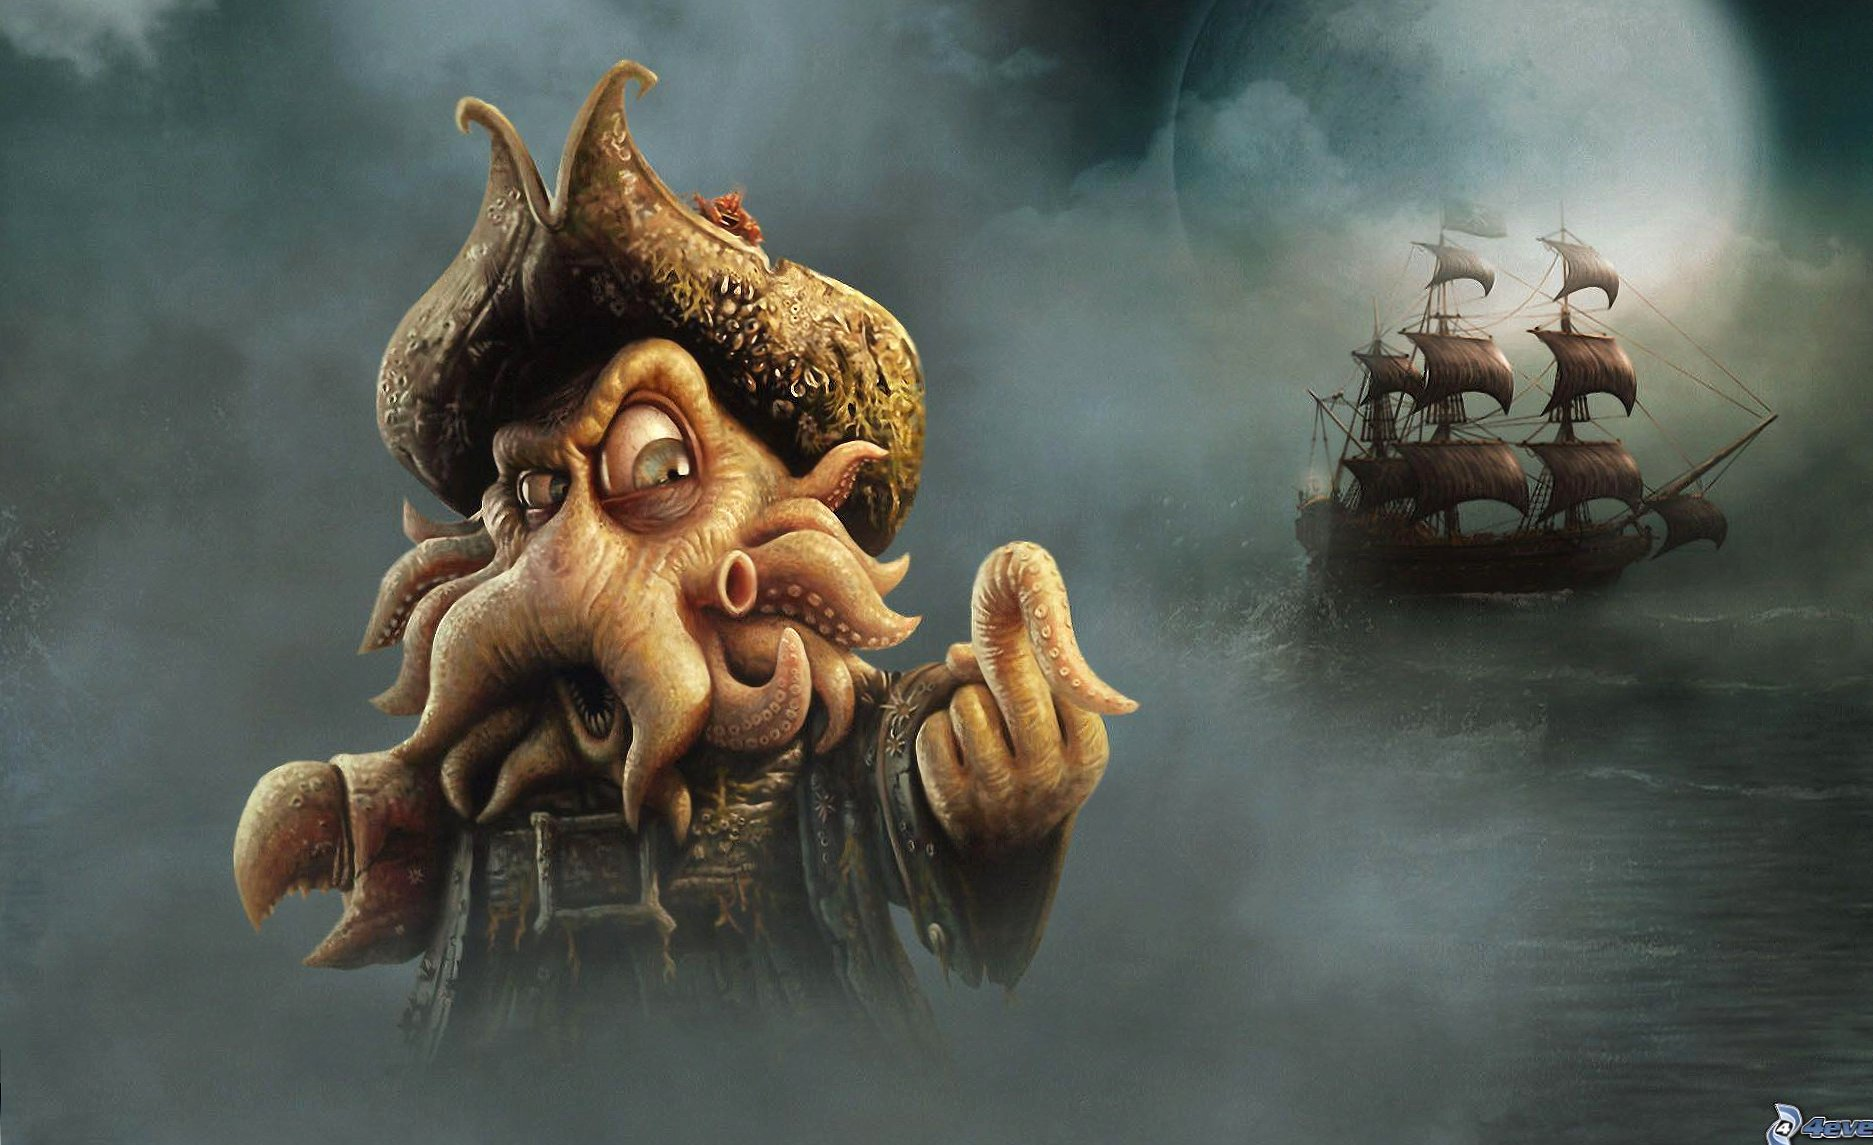 Funny carribean pirates caricature wallpapers HD quality